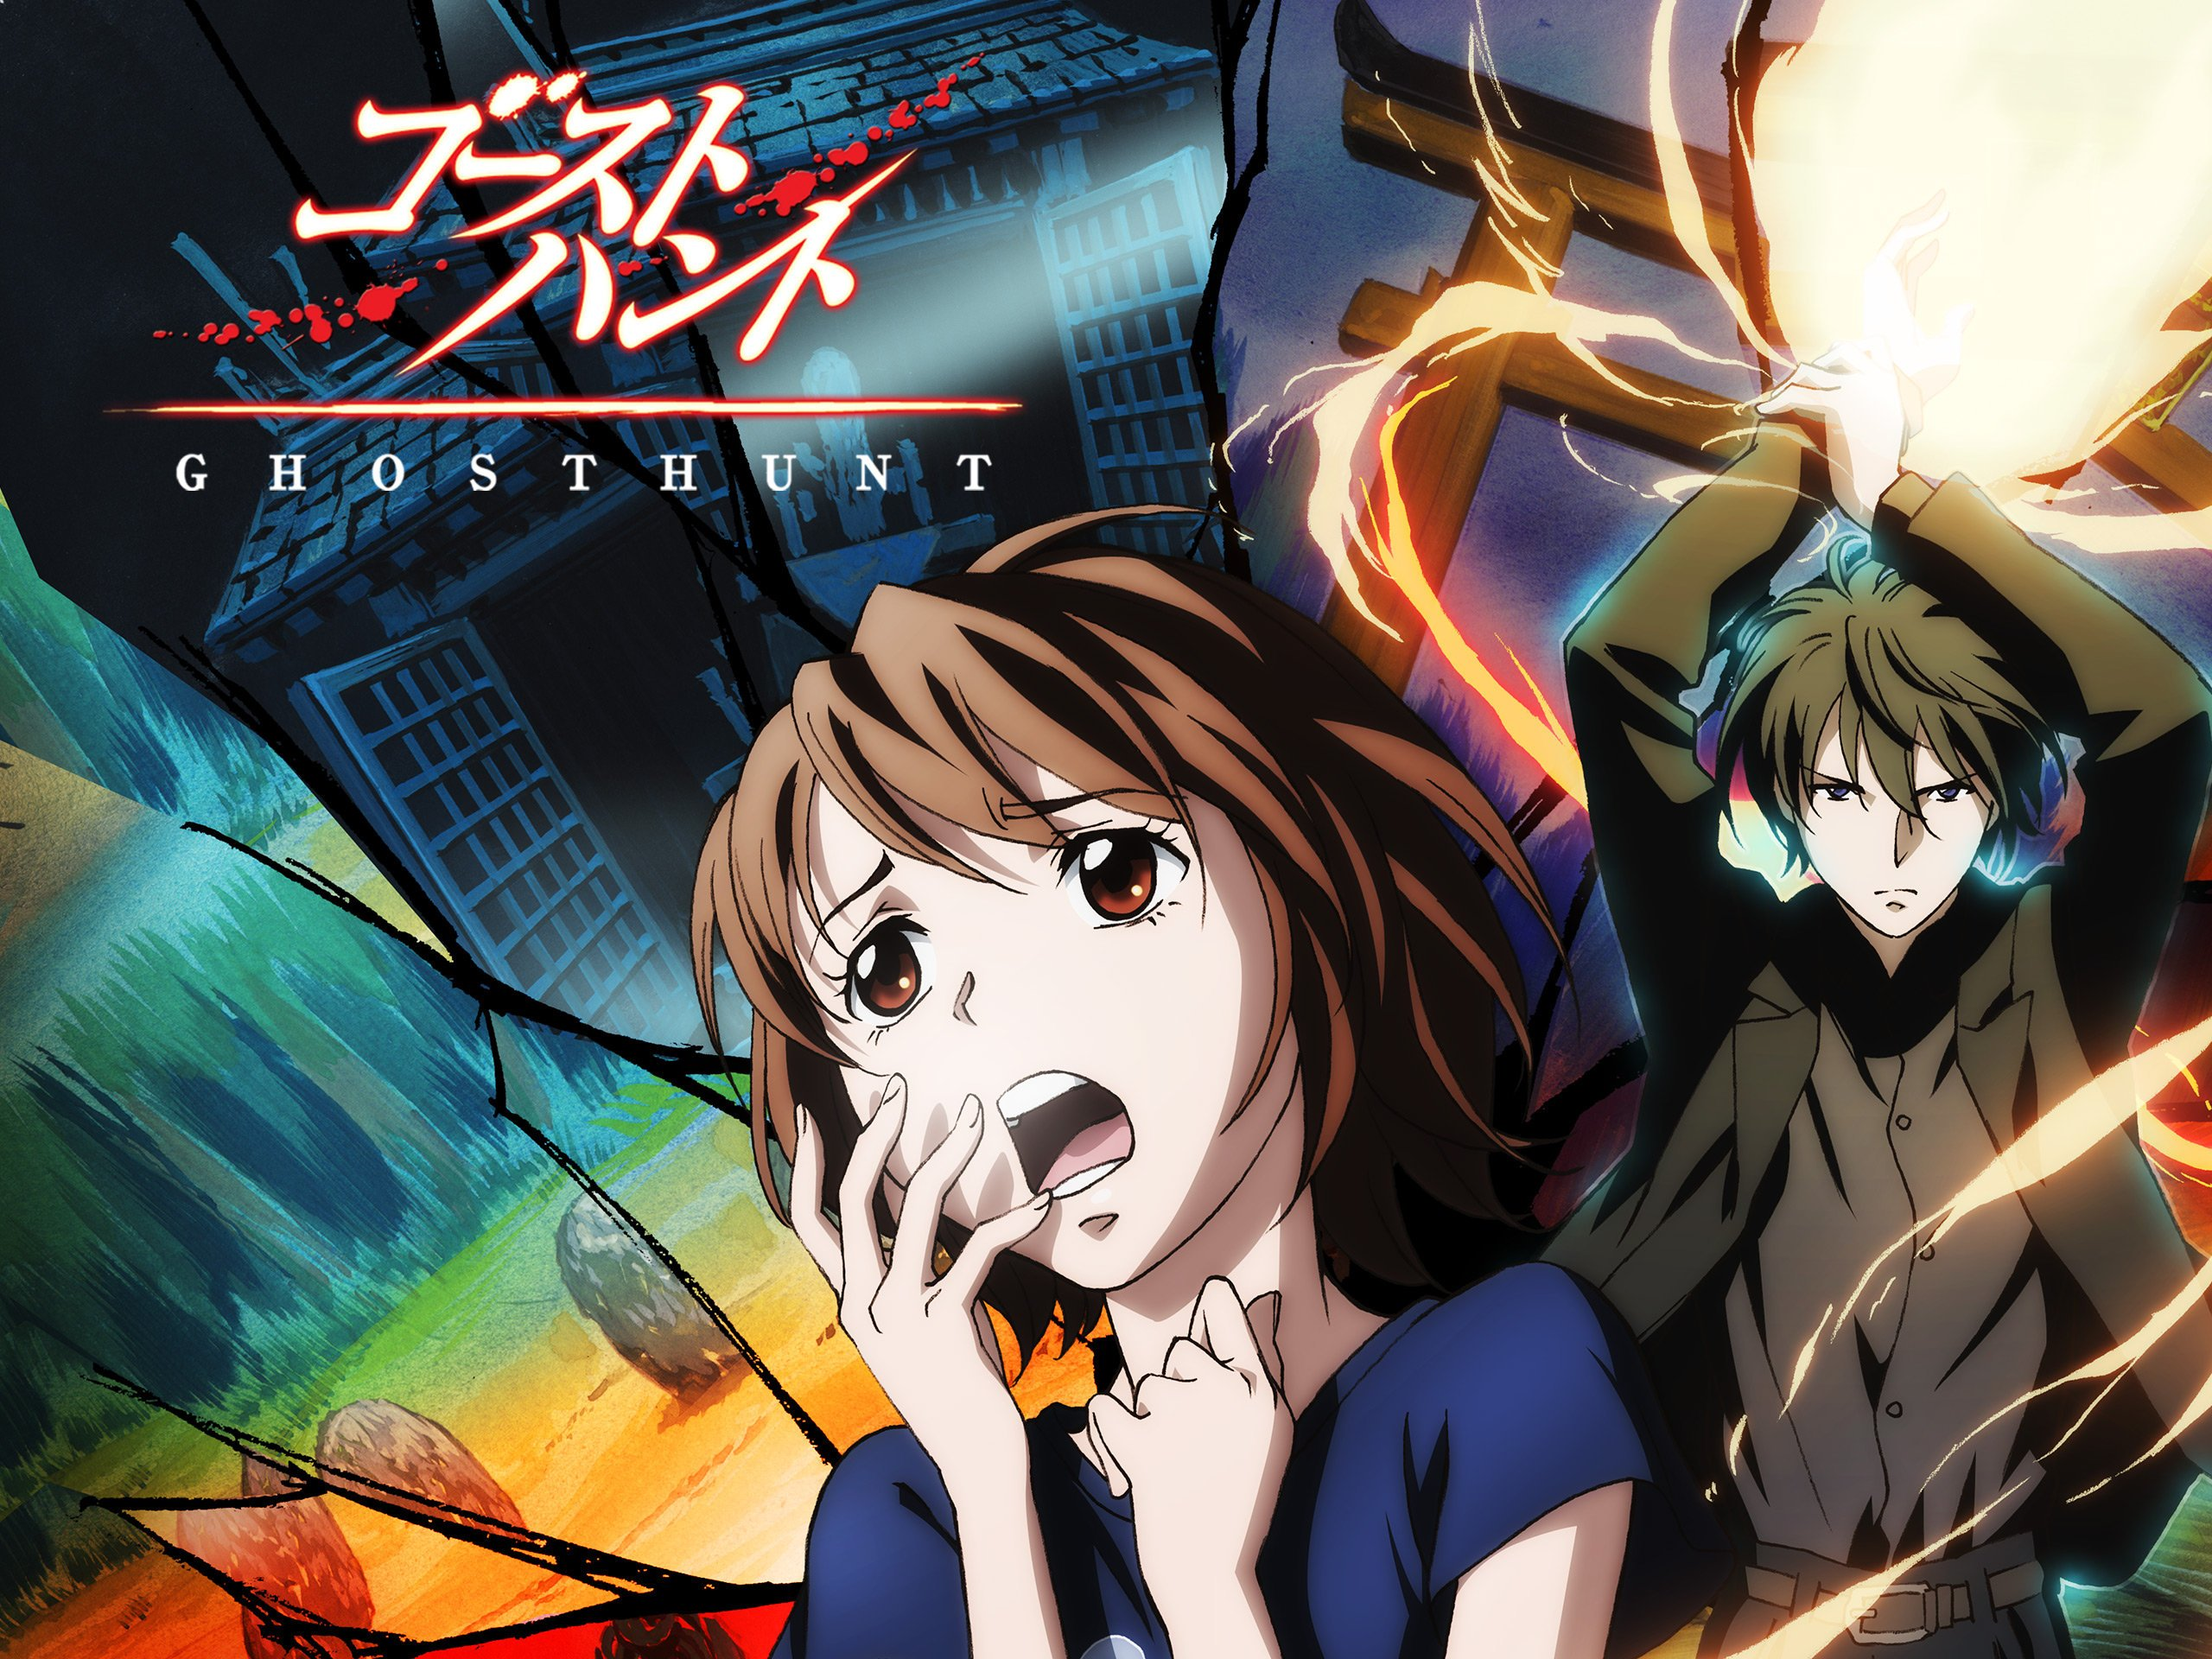 watch ghost hunt anime online free